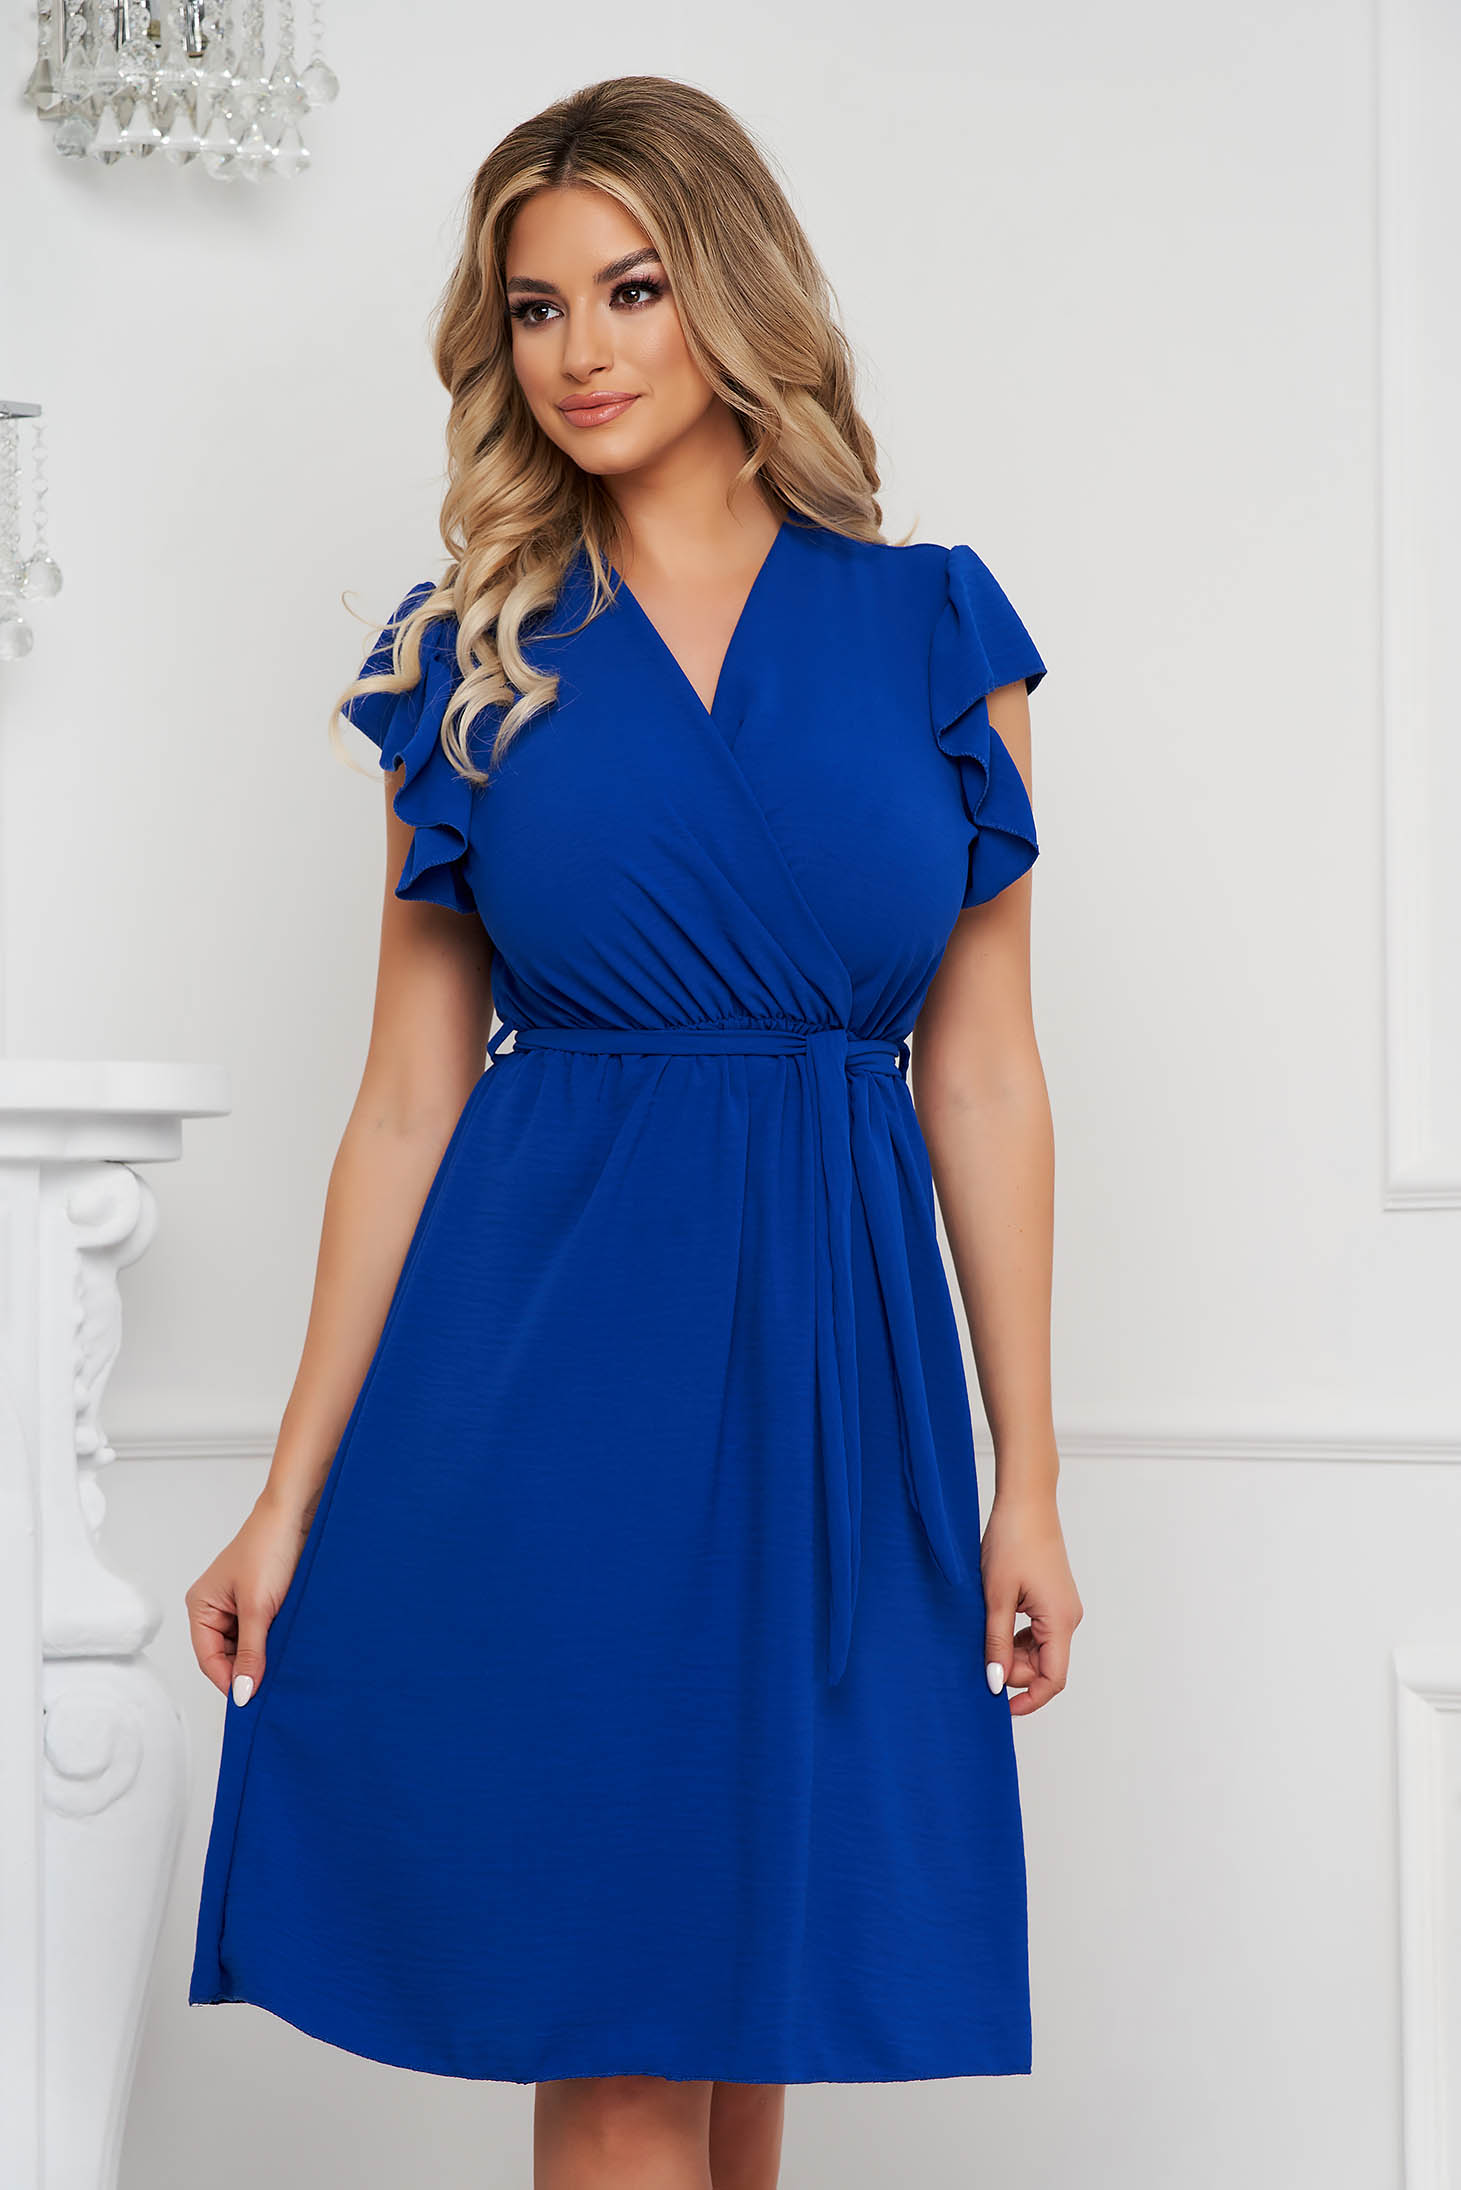 Blue dress midi cloche with elastic waist with ruffle details airy fabric